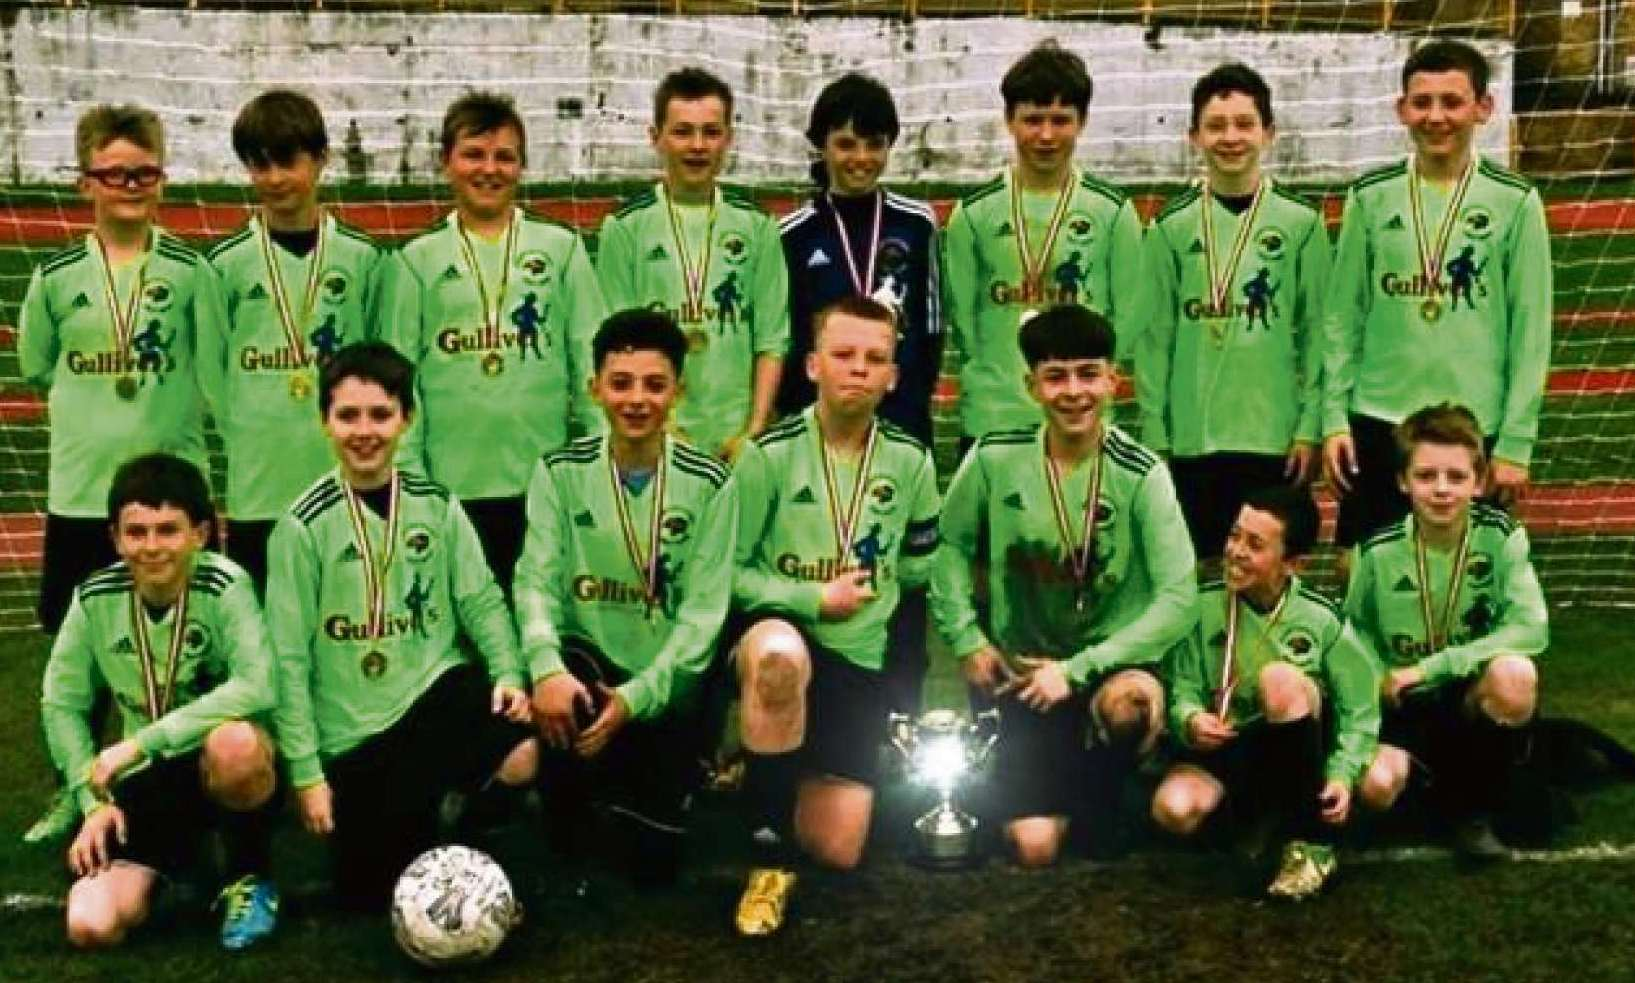 CUP WINNERS: Underdogs Porthkerry Panthers were all smiles after they clinched the Vale Junior Soccer League U13 Cup following a penalty shoot-out.